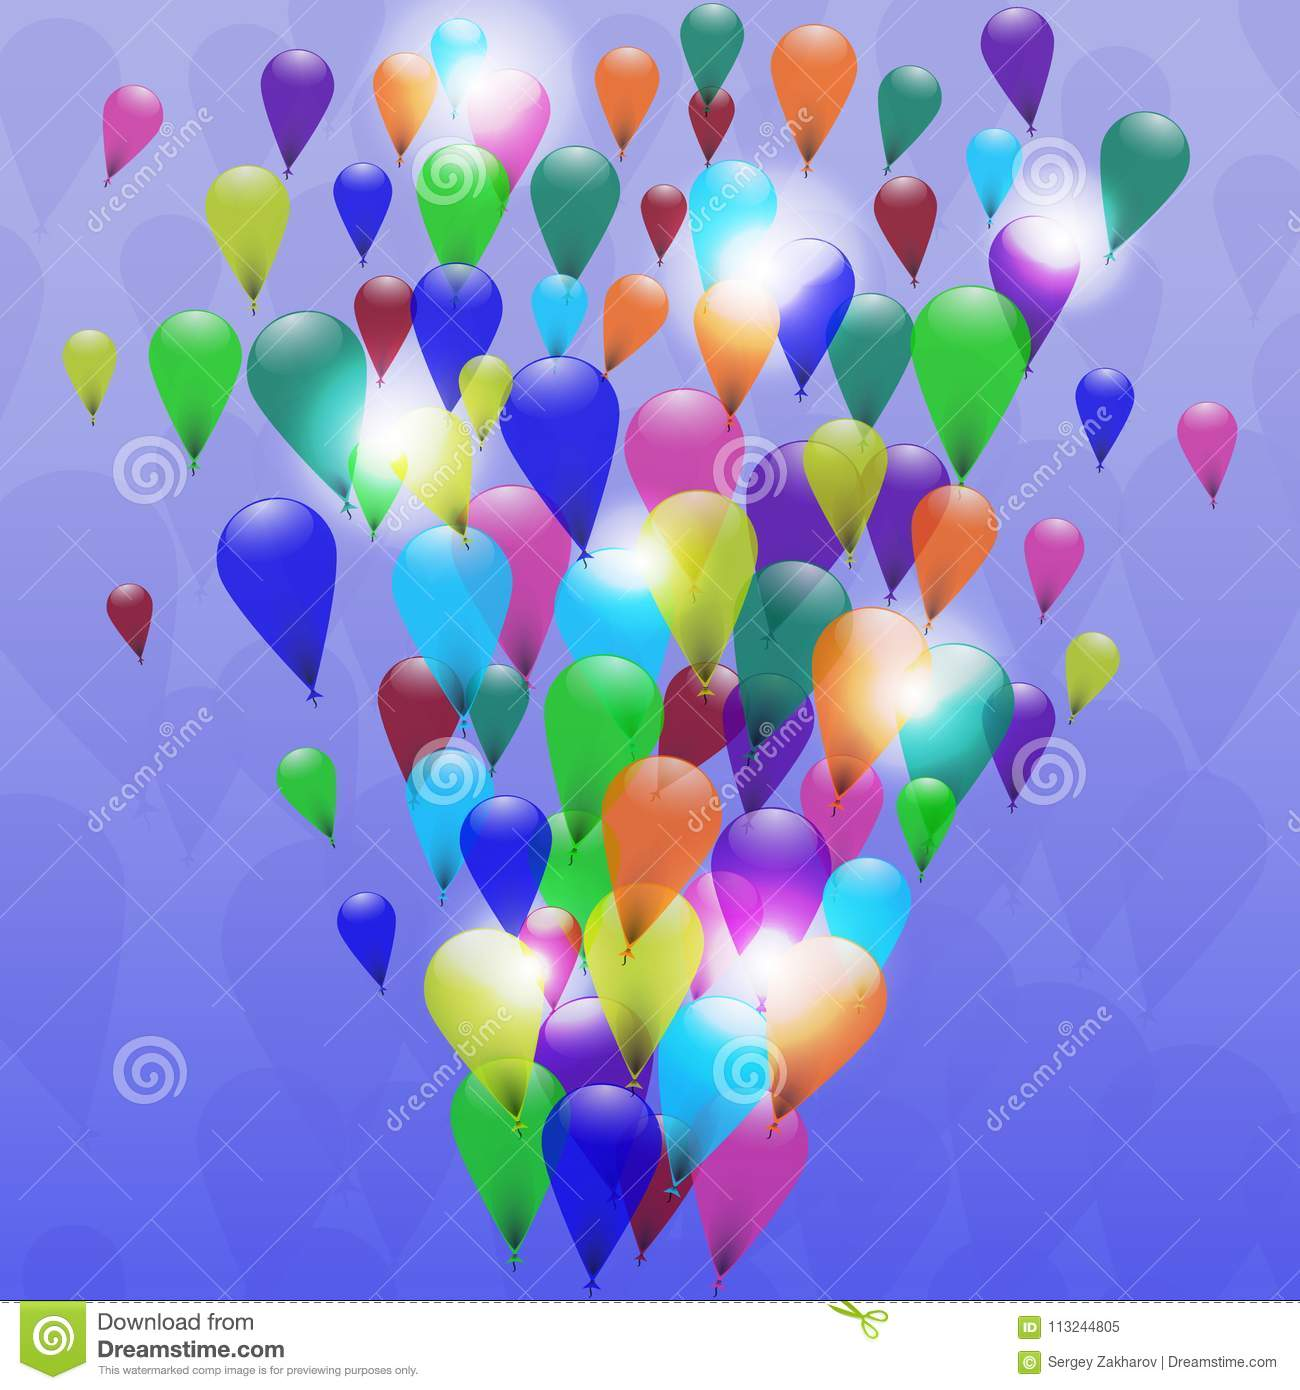 Abstract Colorful Balloons Celebration Background Great For Christmas Birthdays Or Other Celebrations